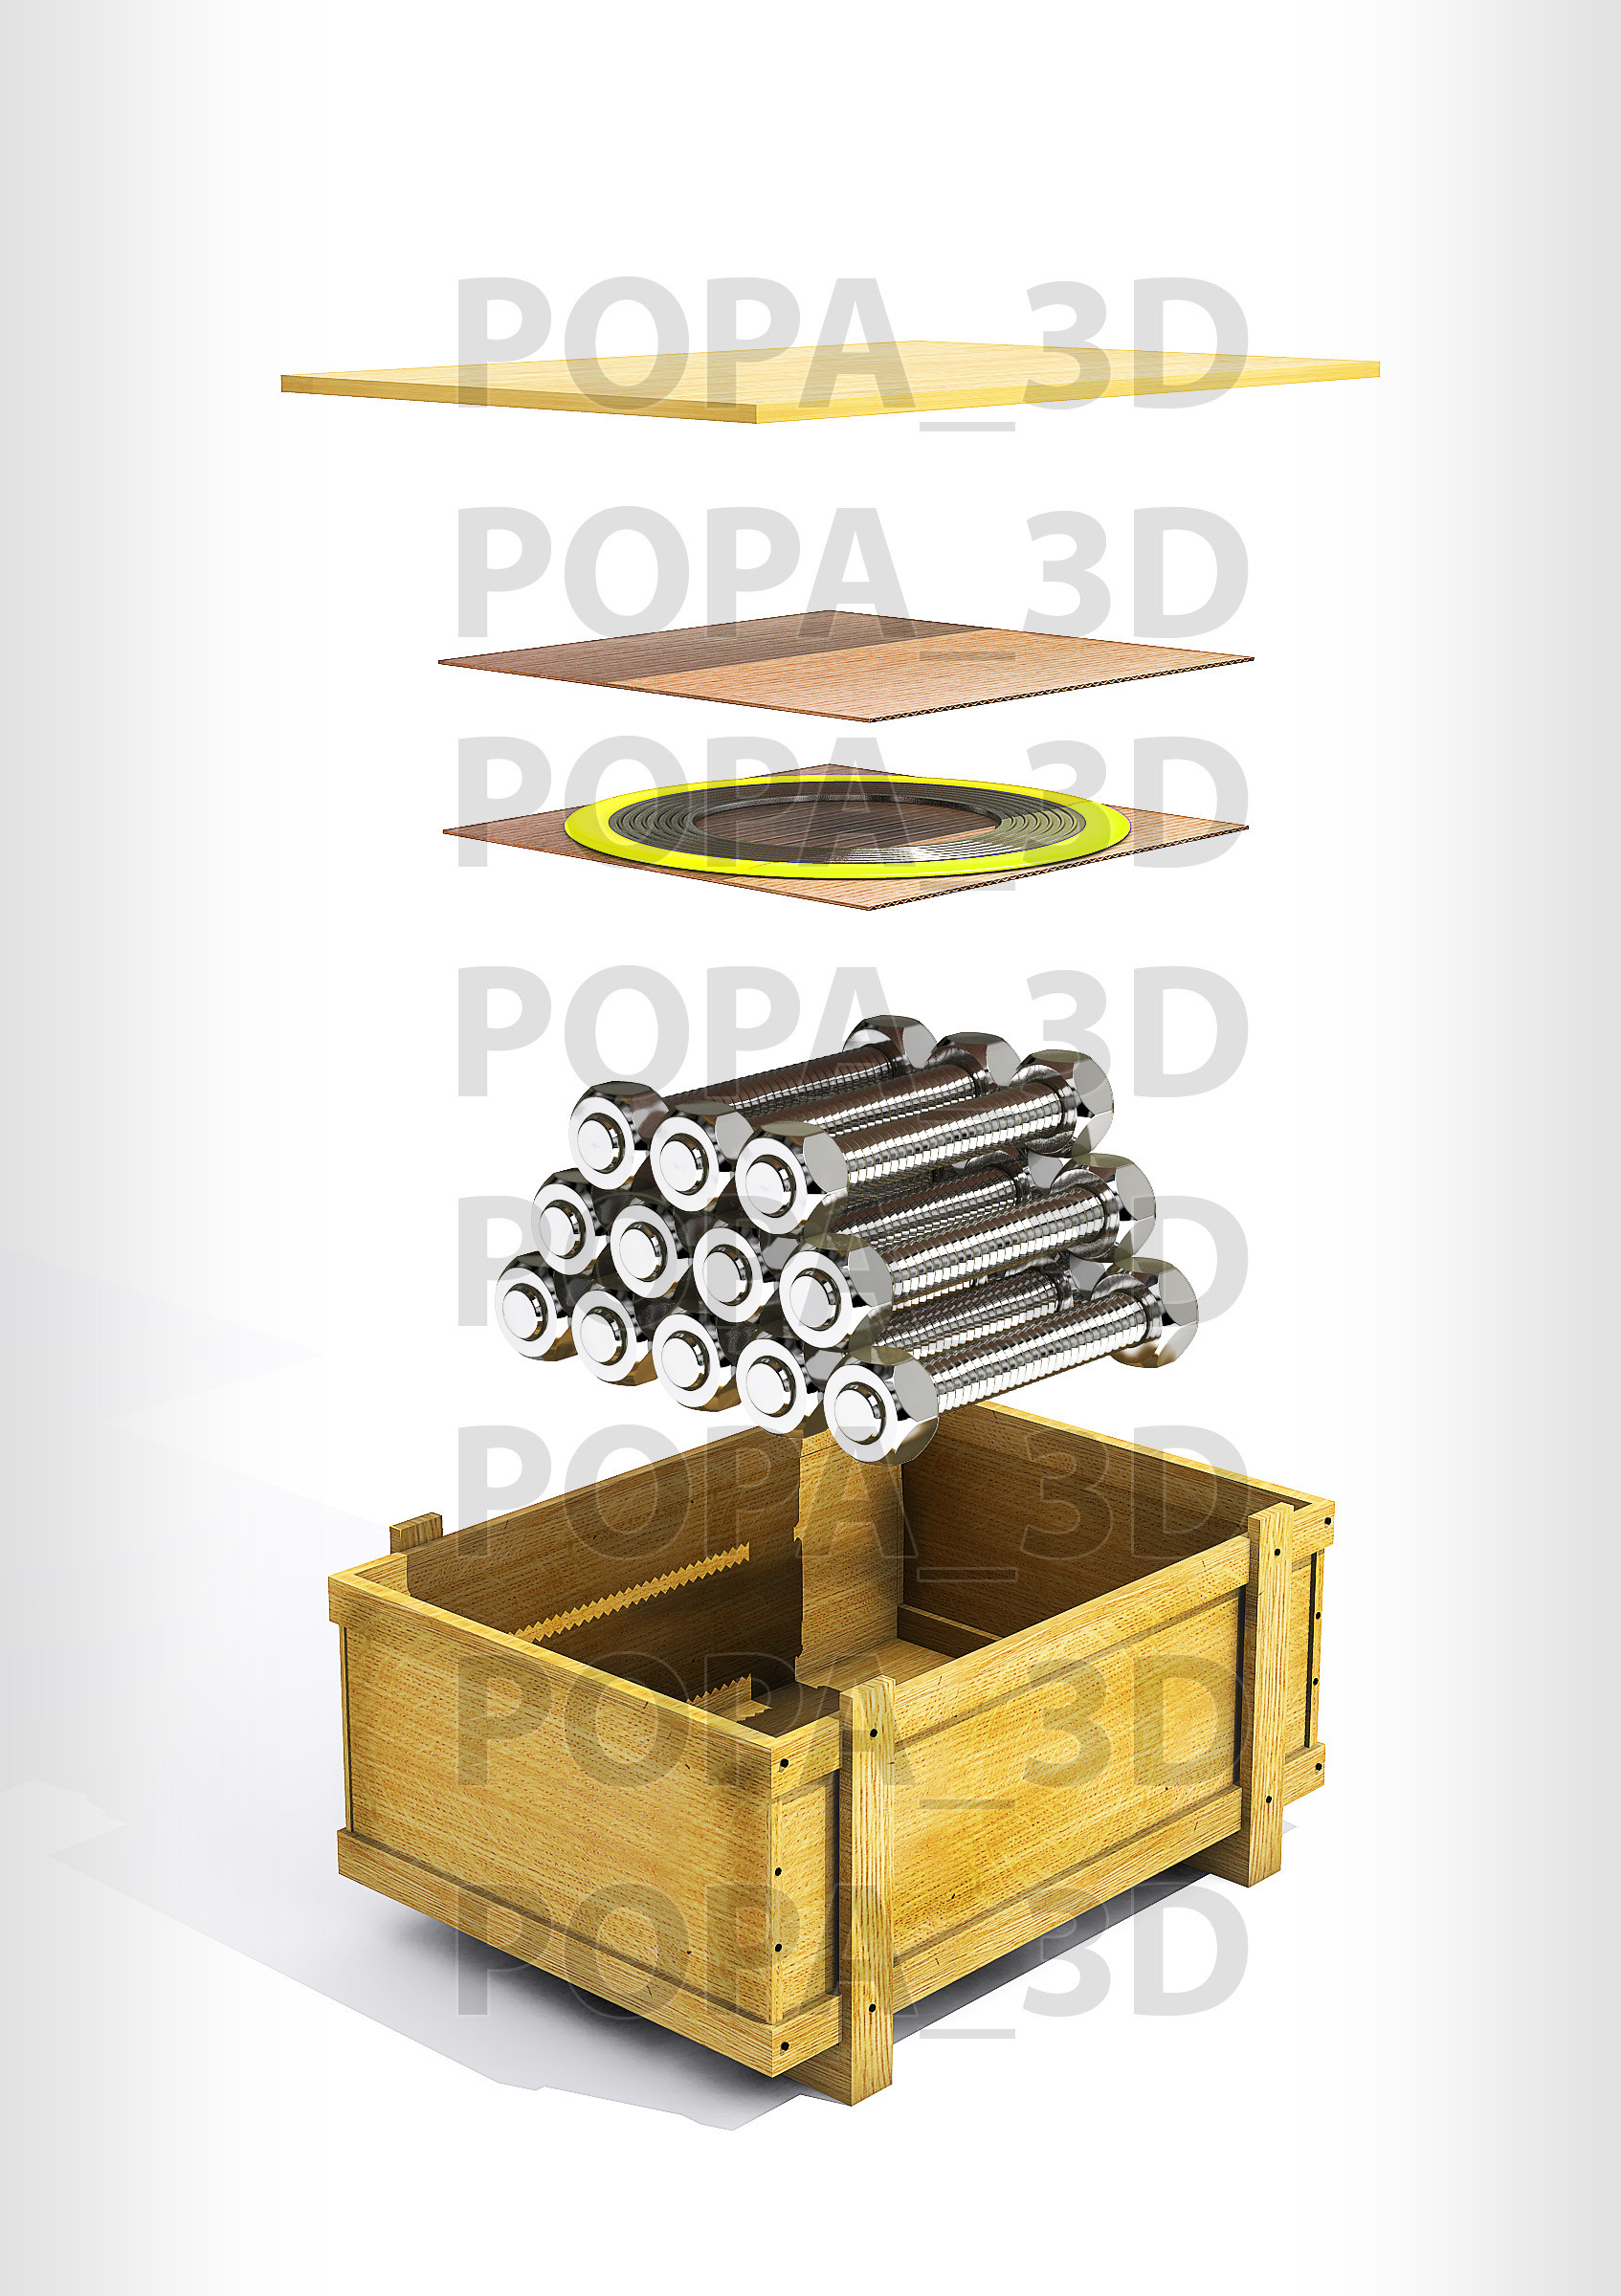 3d rods crate cards gasket model